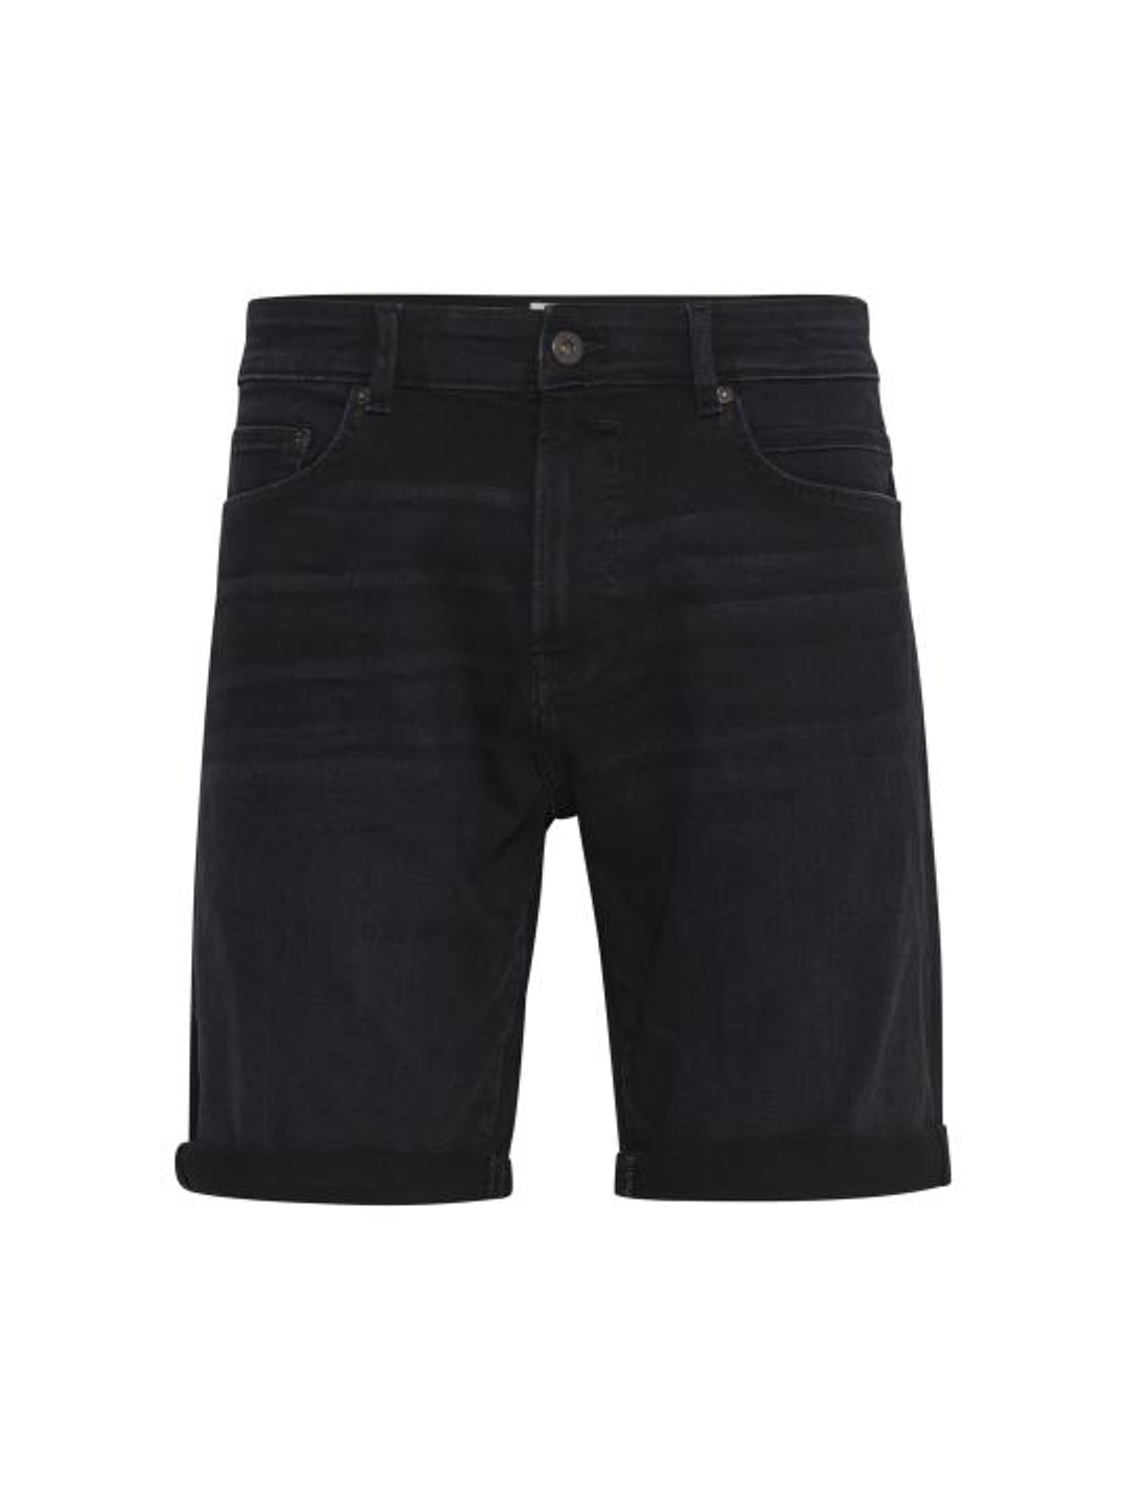 SOLID - DENIM SHORTS RYDER BLACK | GATE 36 Hobro